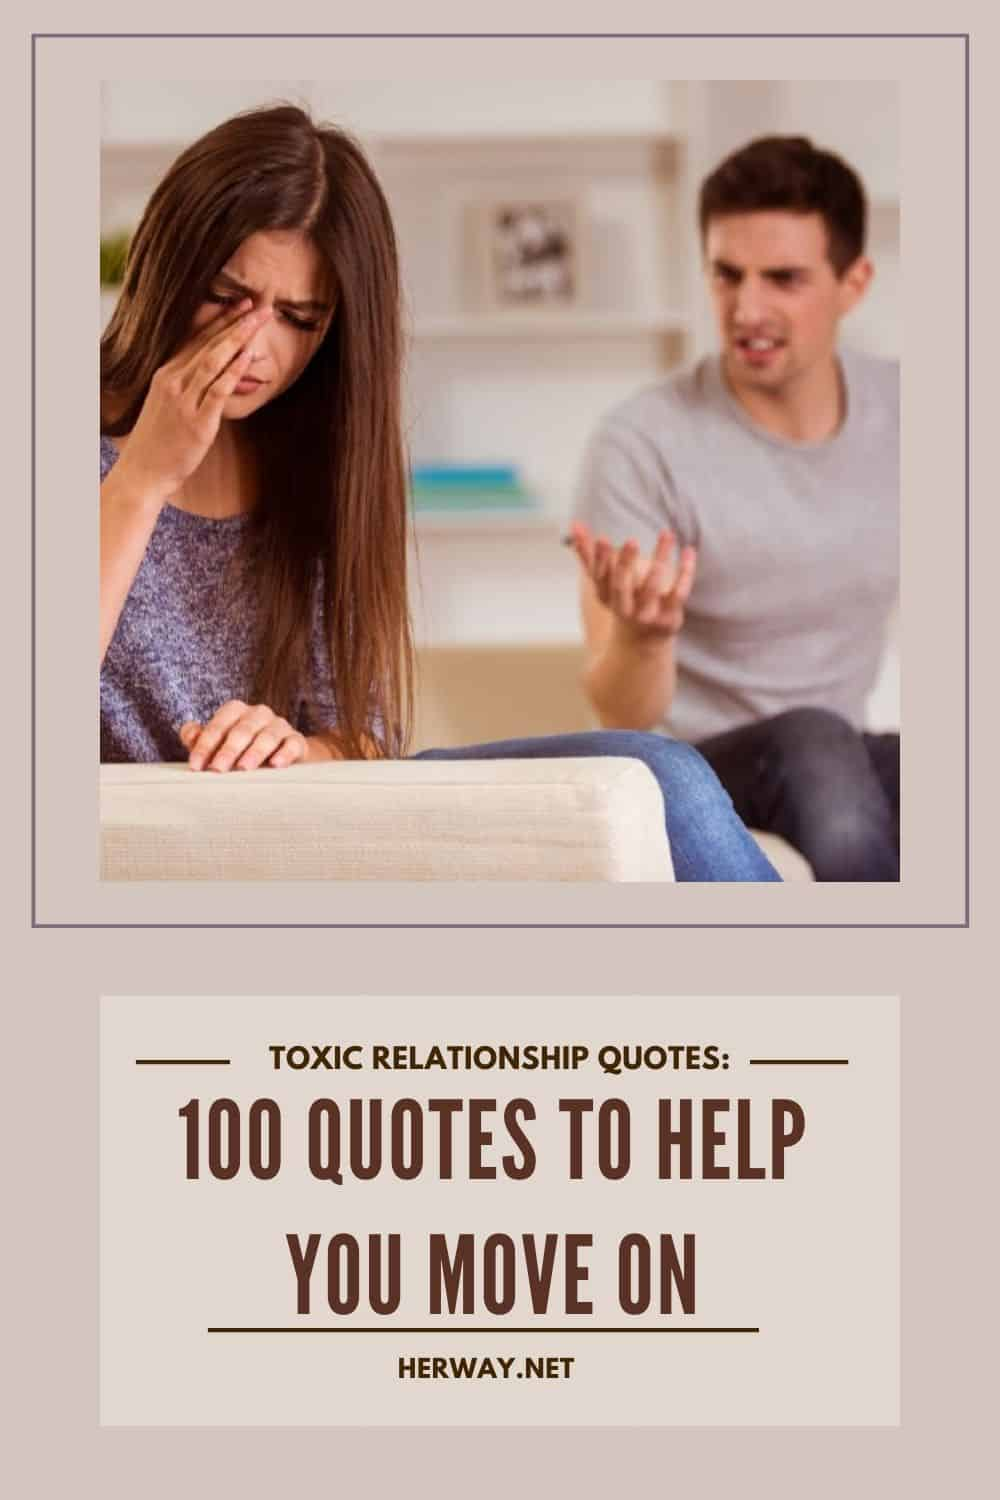 Toxic Relationship Quotes: 100 Quotes To Help You Move On pinterest